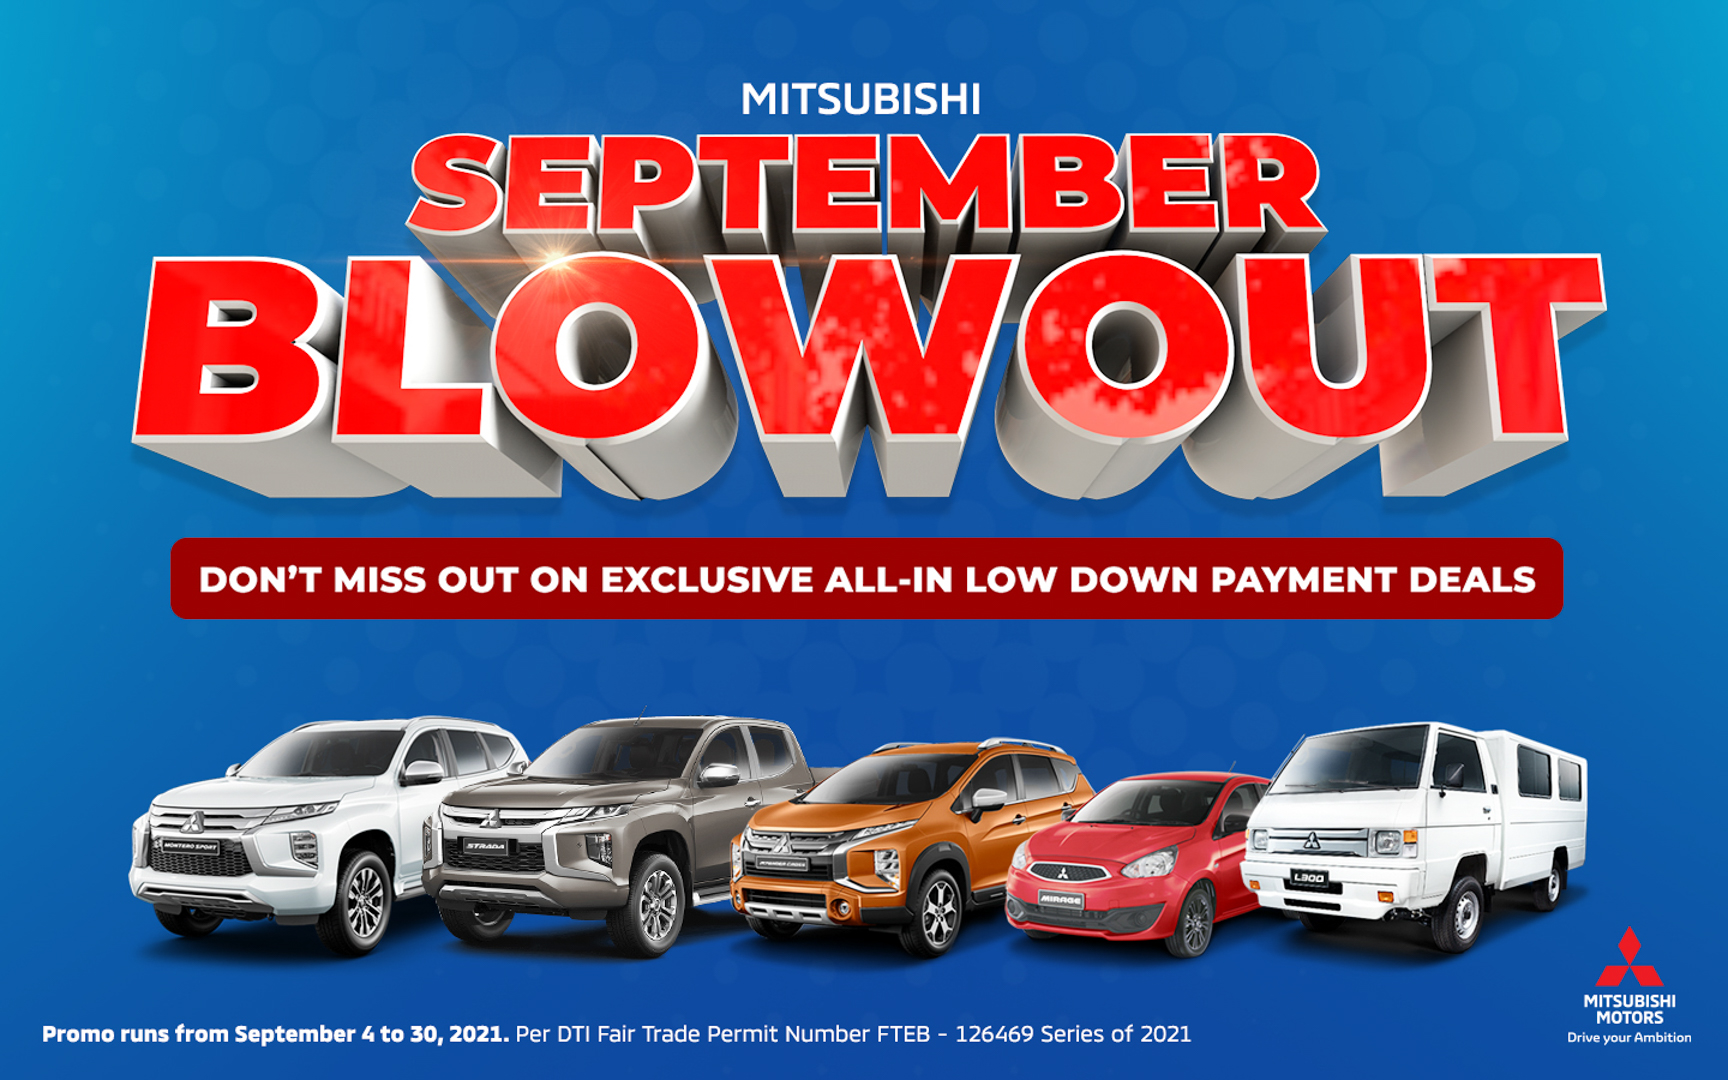 Mitsubishi Motors Philippines Corp. Offers Amazing Deals Through its September Blowout Promo